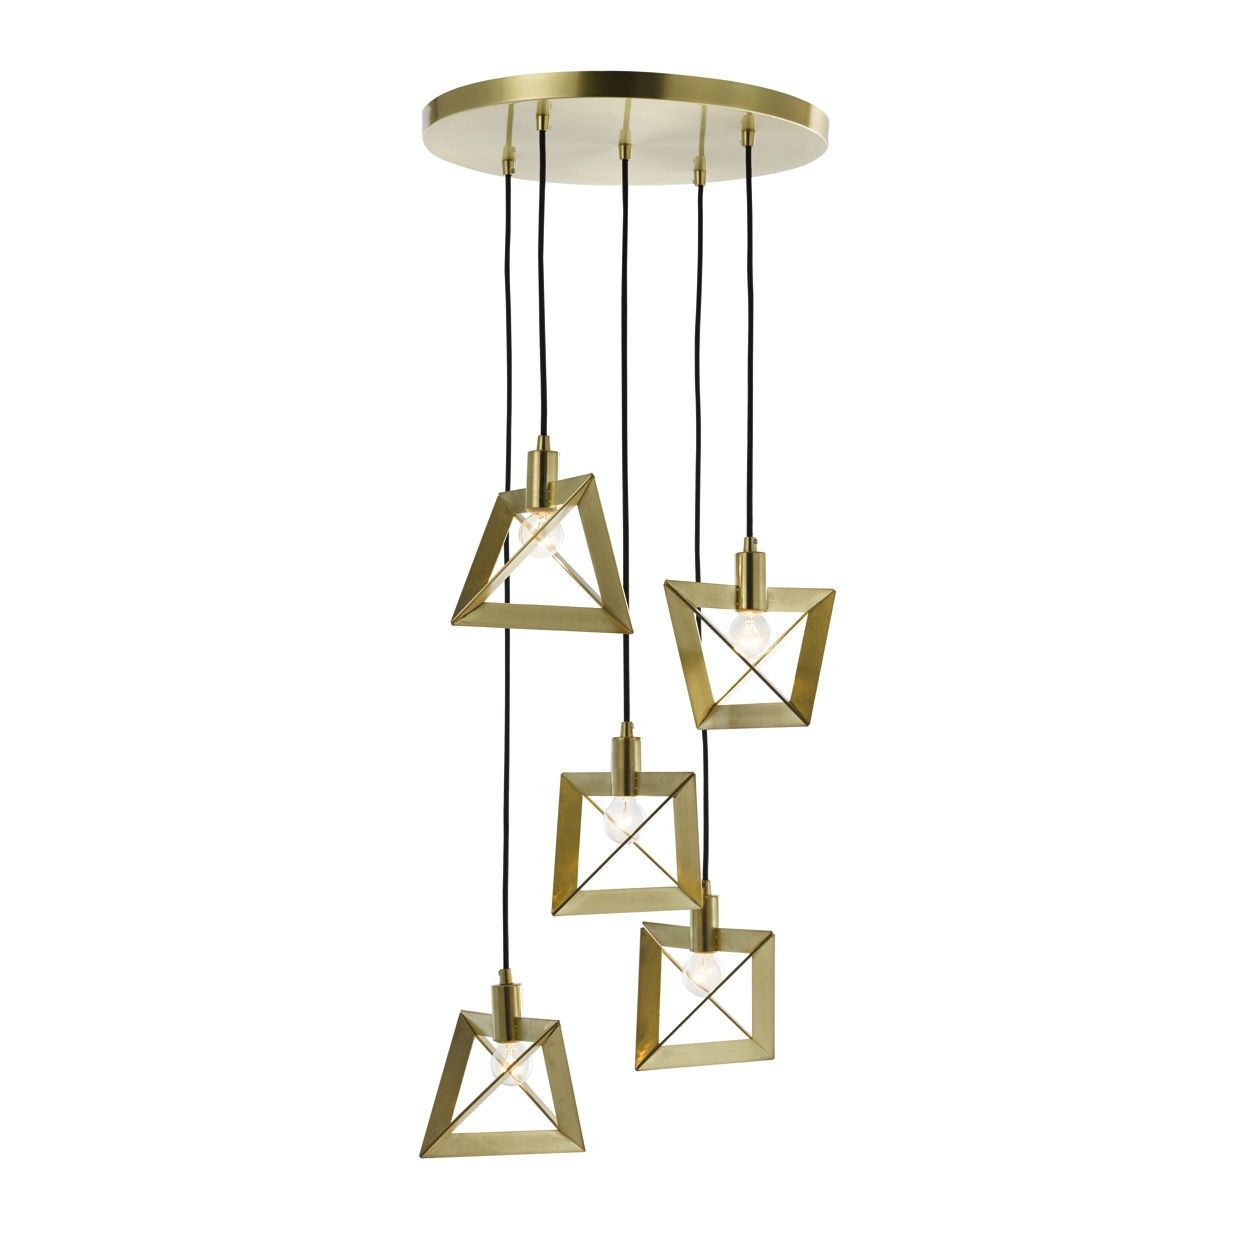 An undeniable statement piece, this ceiling light will add ...